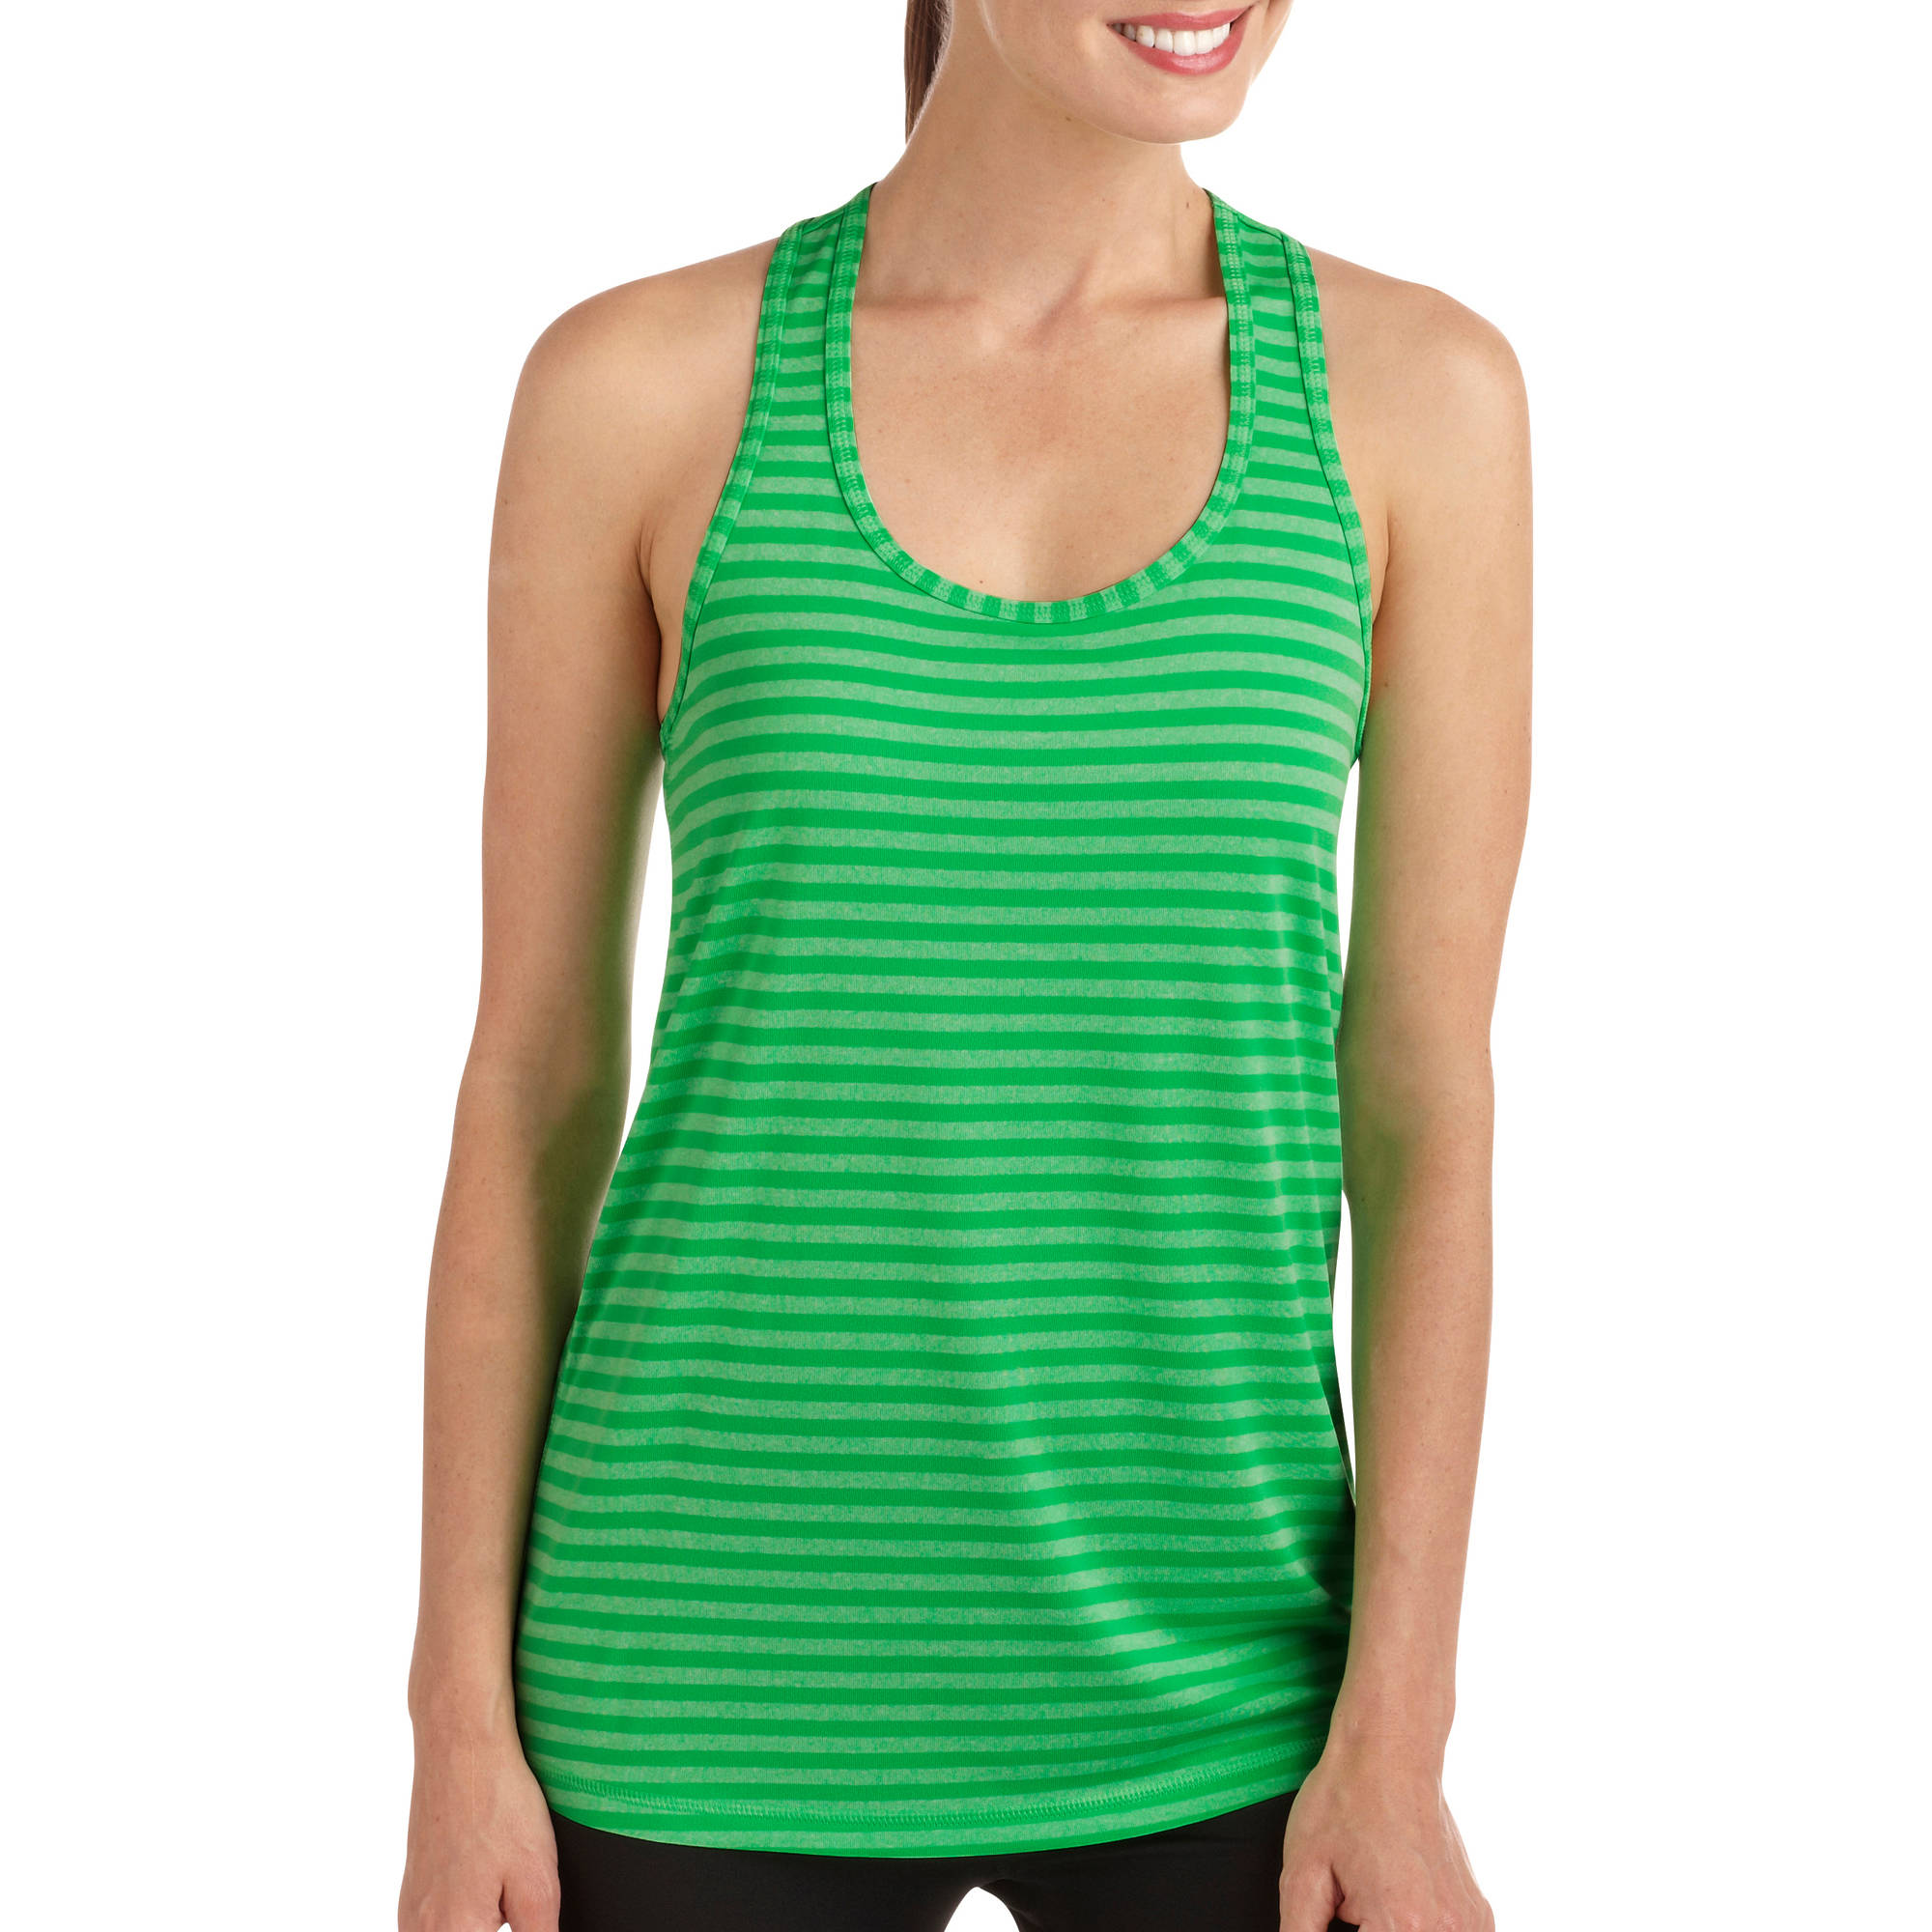 Women's Striped Performance Racerback Tank with Wicking